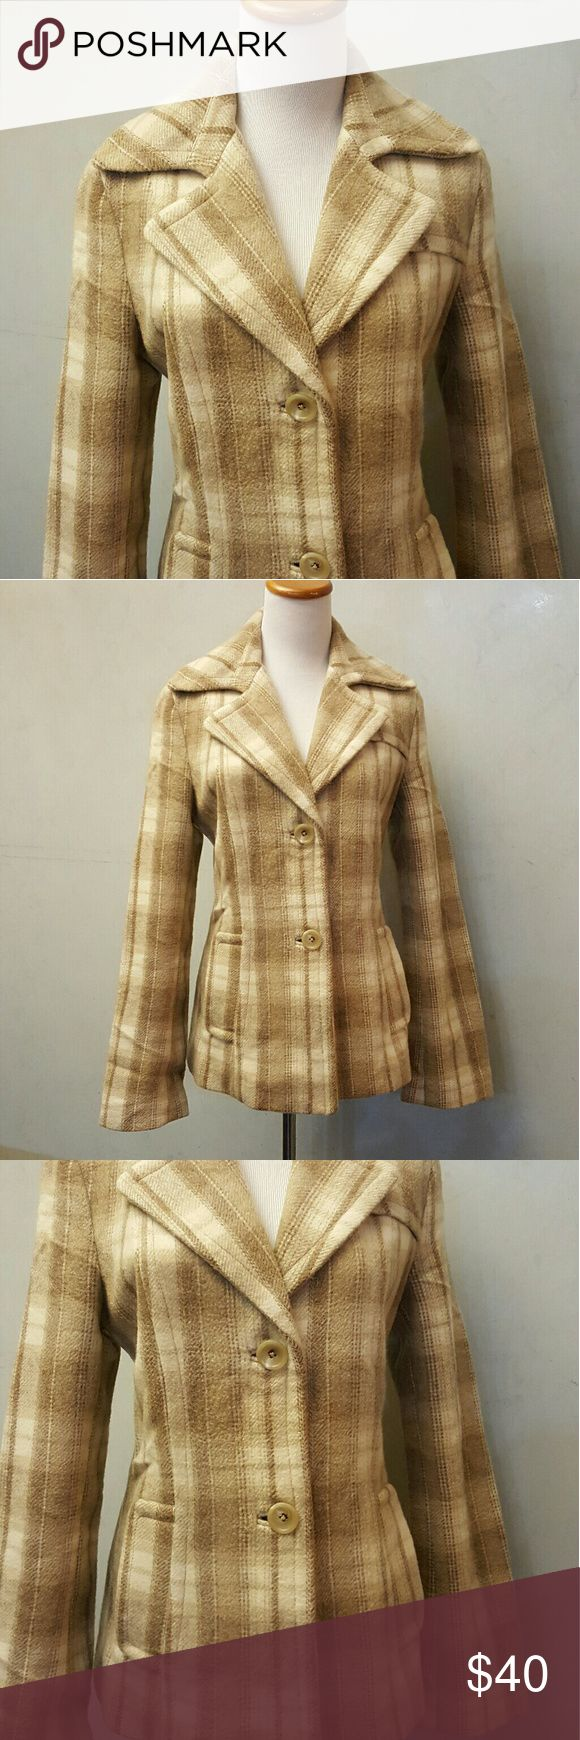 Banana Republic plaid Peacoat Banana Republic beige and taupe plaid Peacoat in perfect condition like new. Banana Republic Jackets & Coats Pea Coats